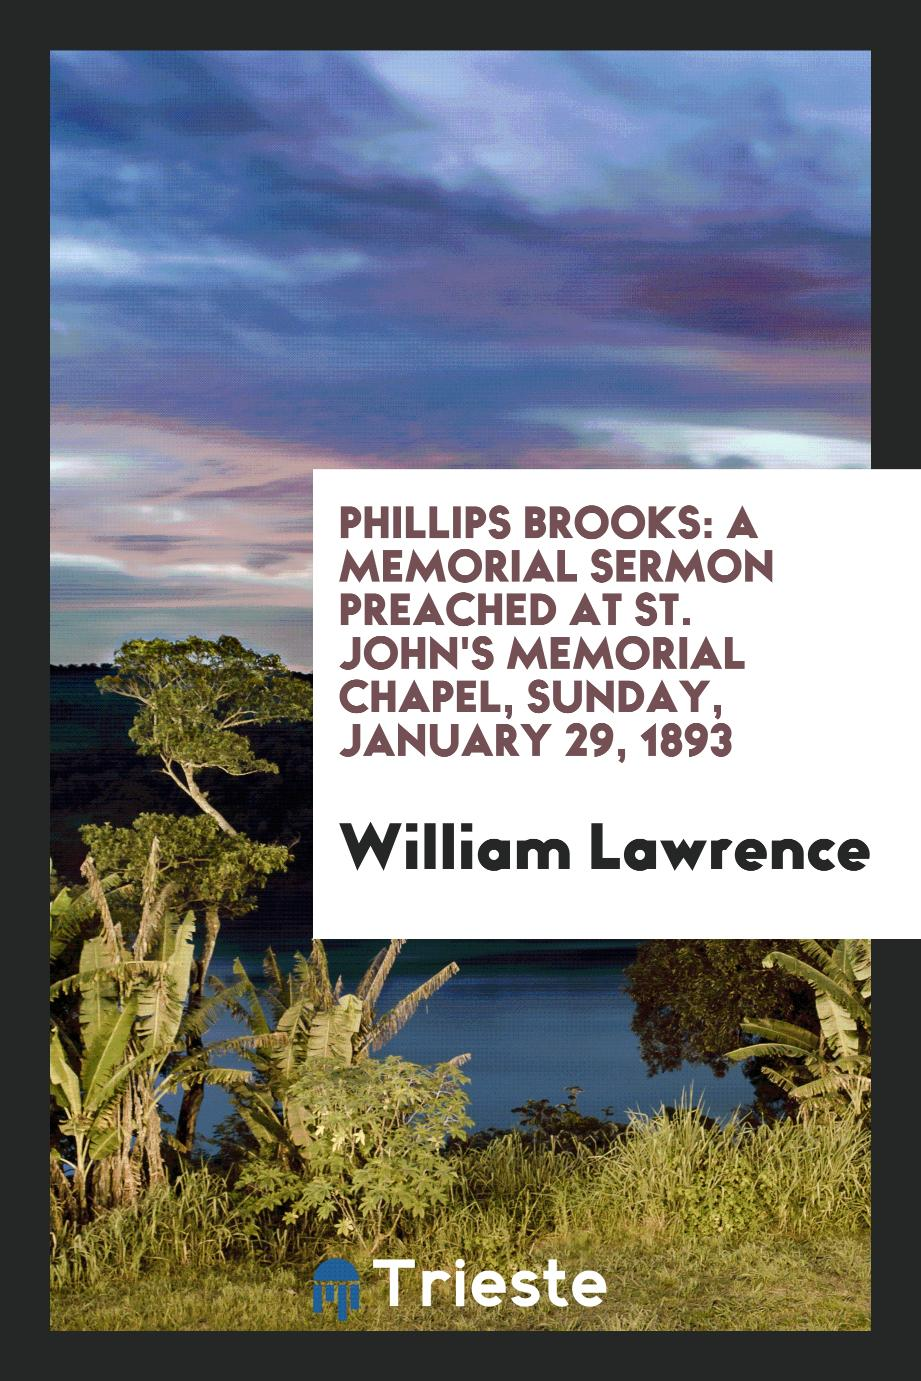 Phillips Brooks: A Memorial Sermon Preached at St. John's Memorial Chapel, sunday, january 29, 1893